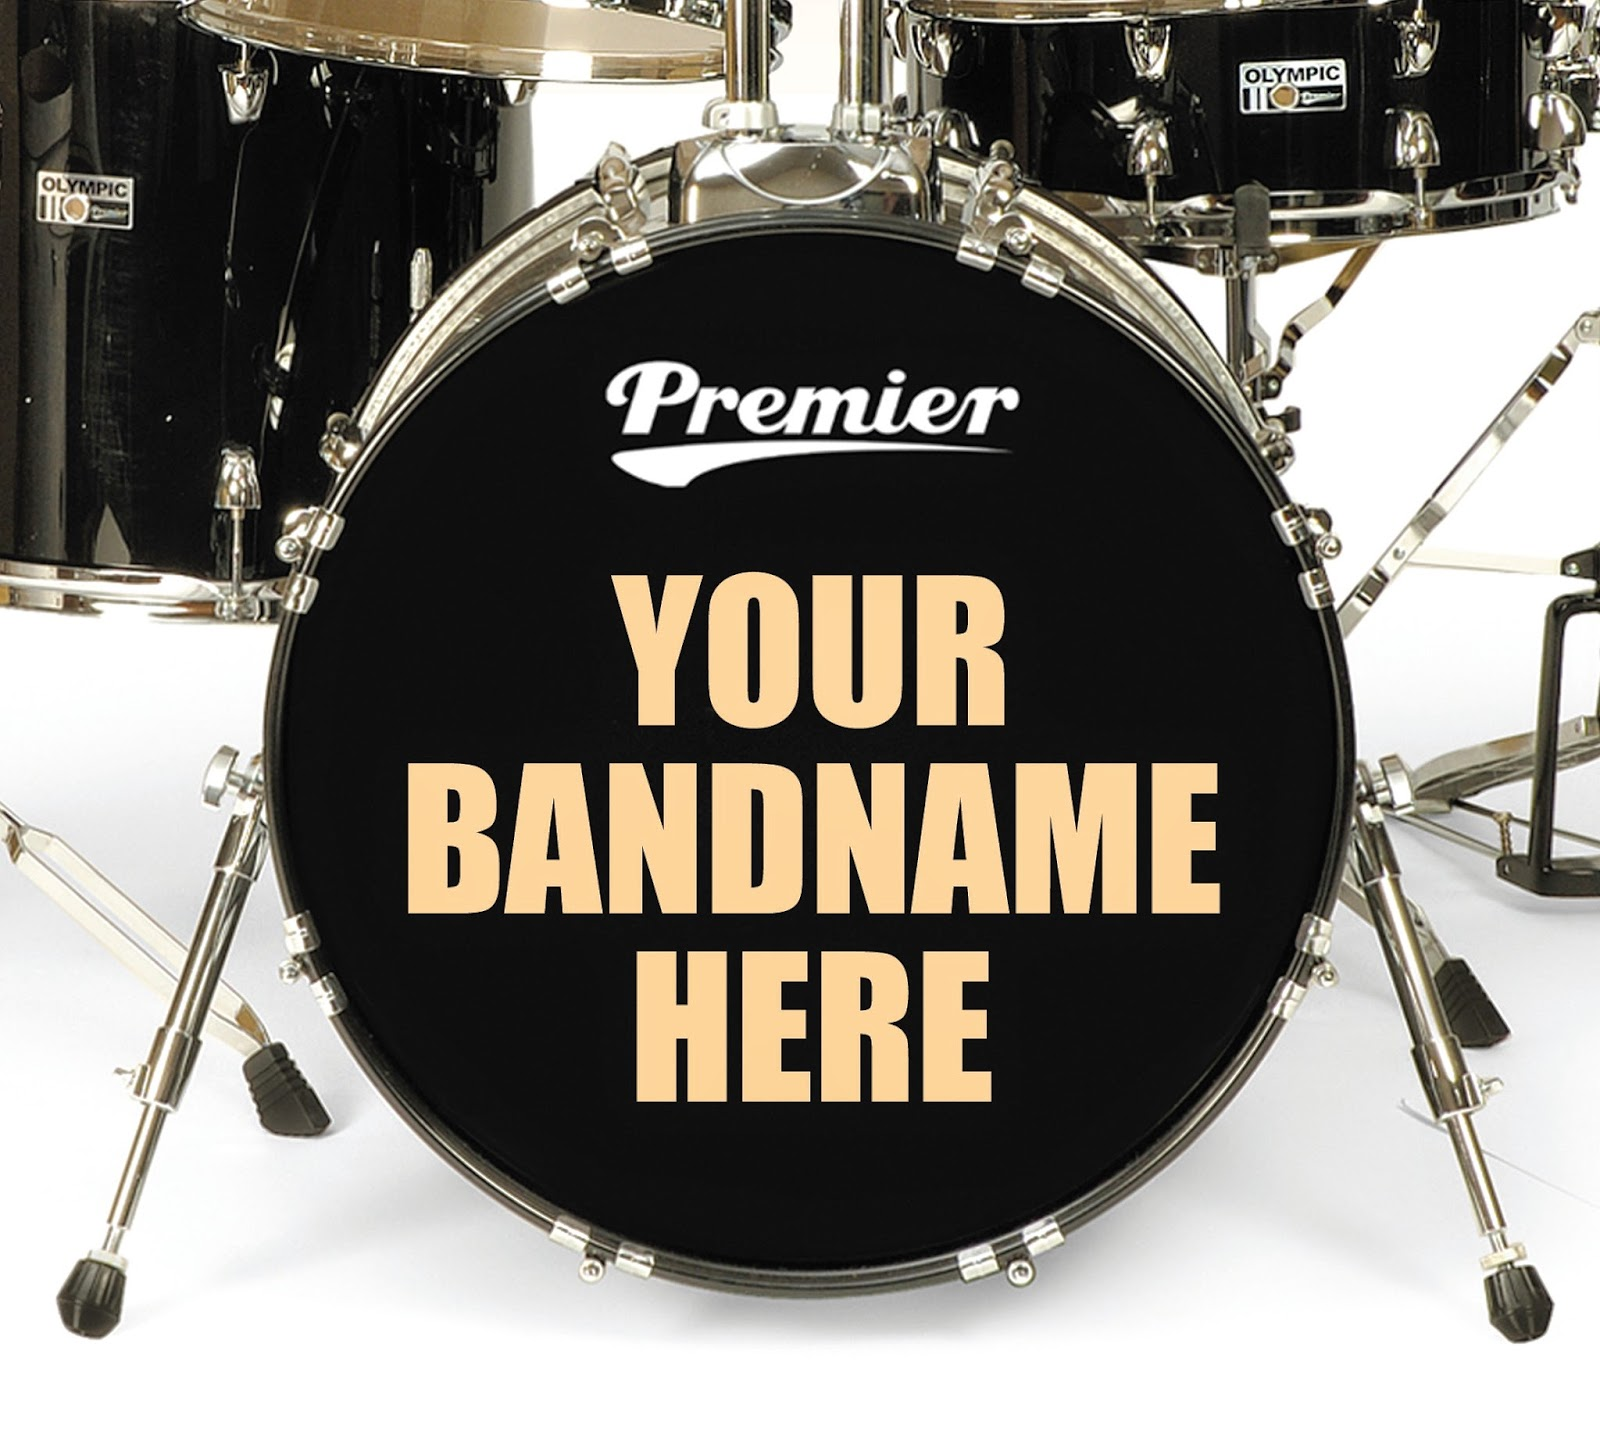 How the Killers got their band name - Base drum - Its the game of the name book cover